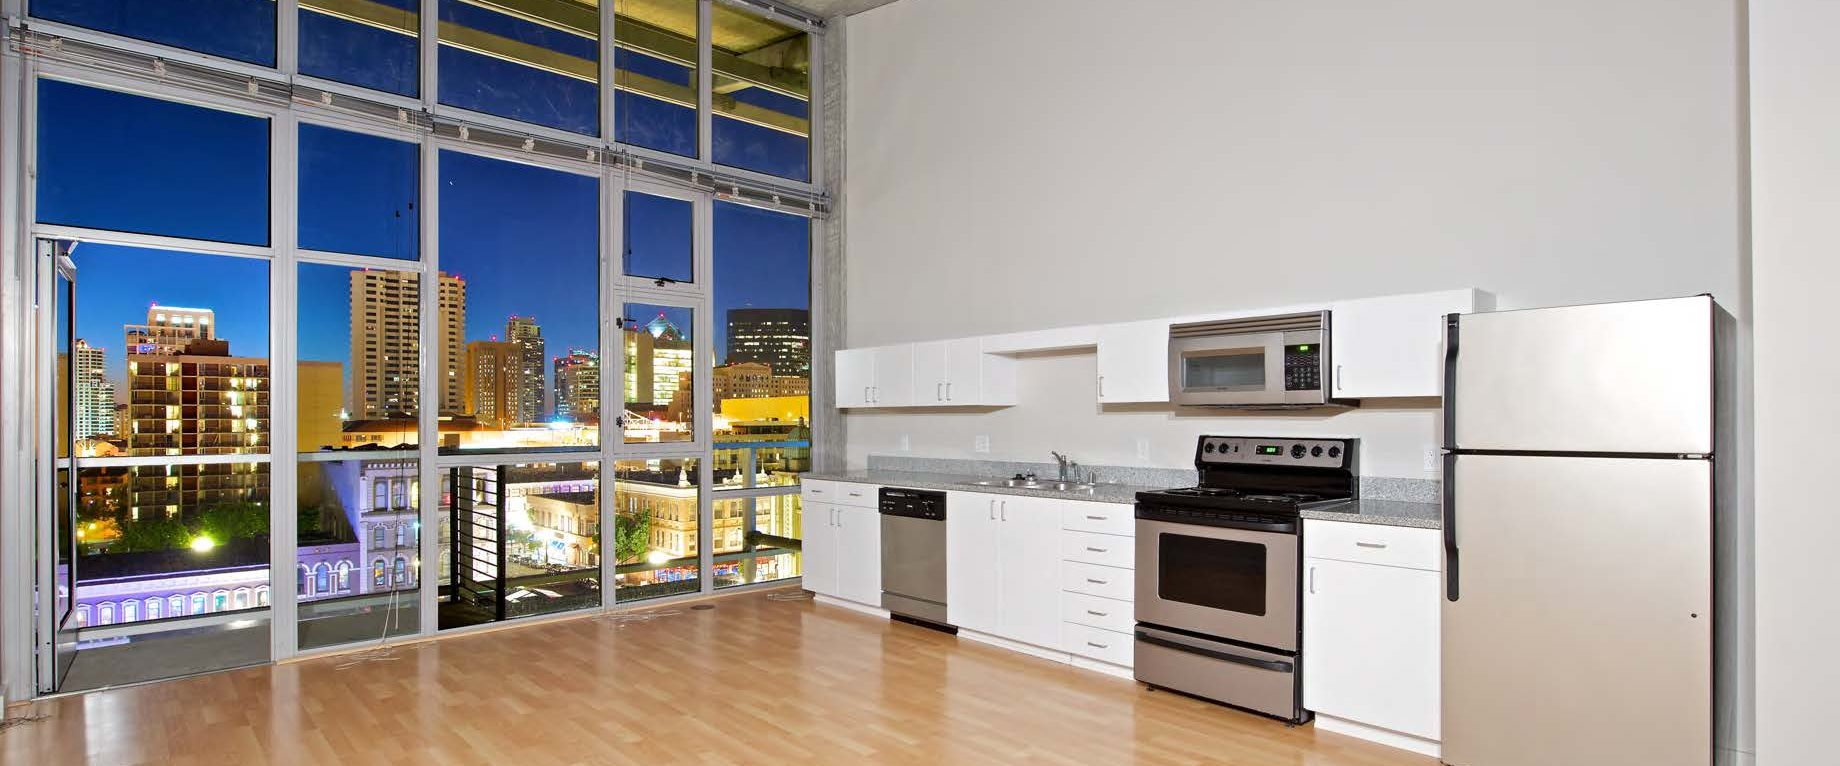 Studio Apartments For Sale In San Diego Ca